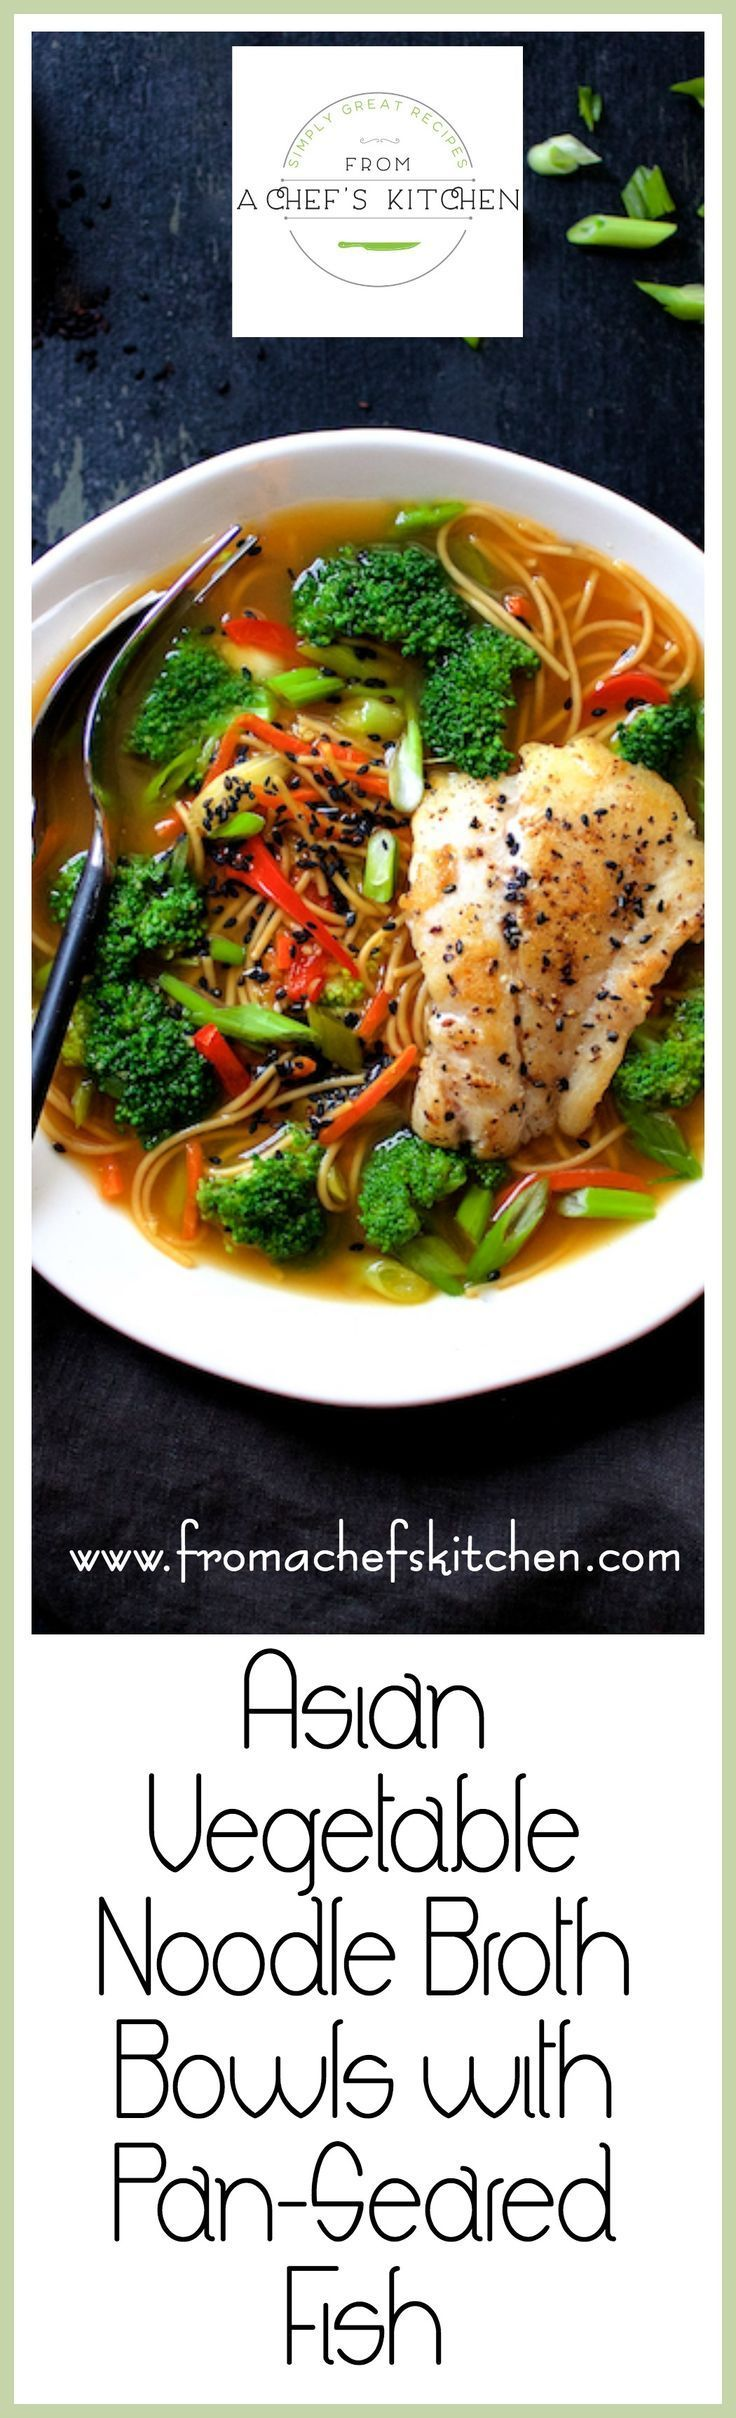 Asian Vegetable Noodle Broth Bowls with Pan Seared Fish is satisfying, healthful, light and versatile!  via /chefcarolb/